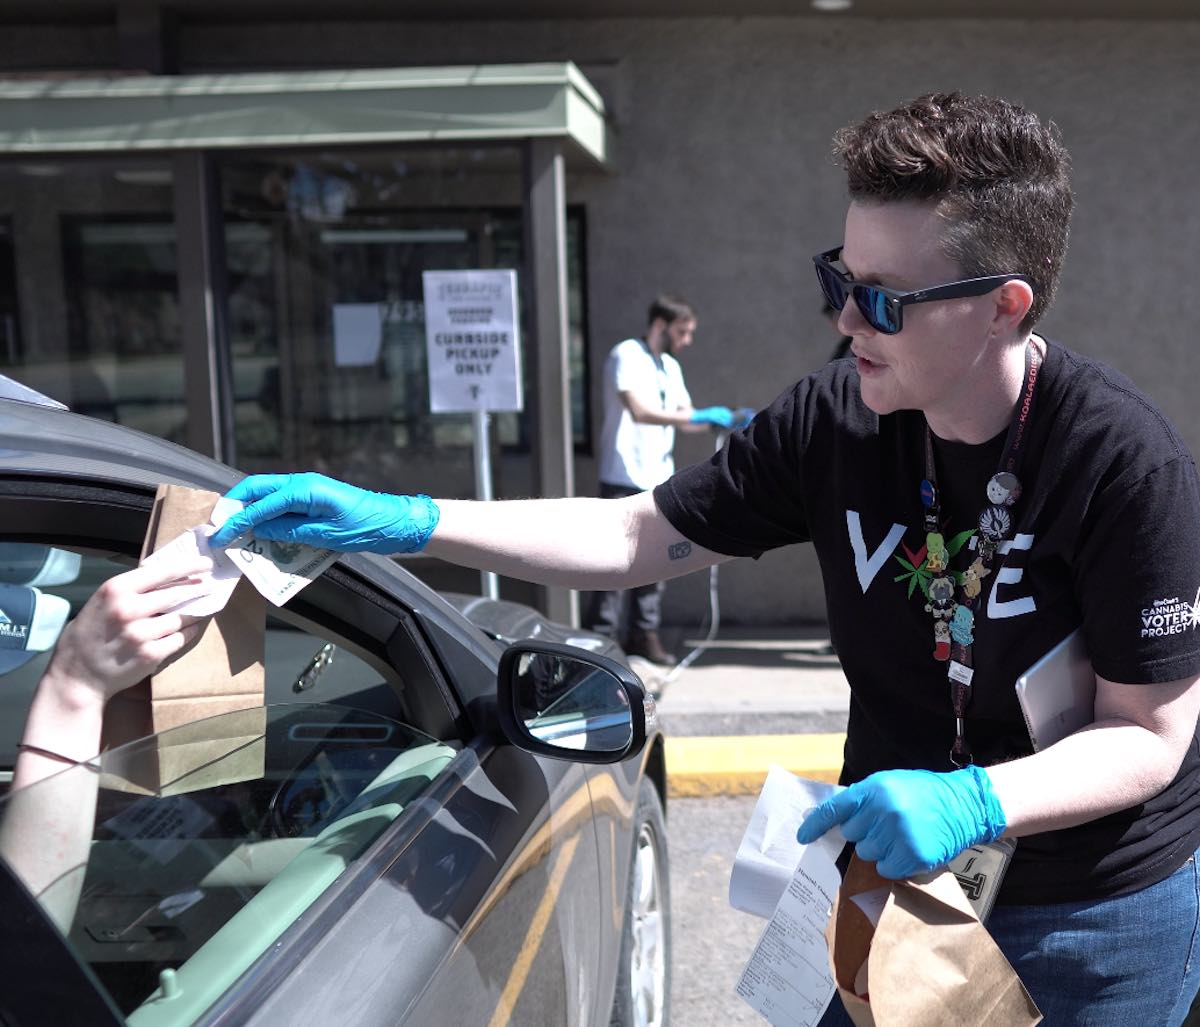 A Terrapin Care Station employee in Colorado conducts curbside pickup March 26, 2020. (Courtesy Terrapin Care Station)